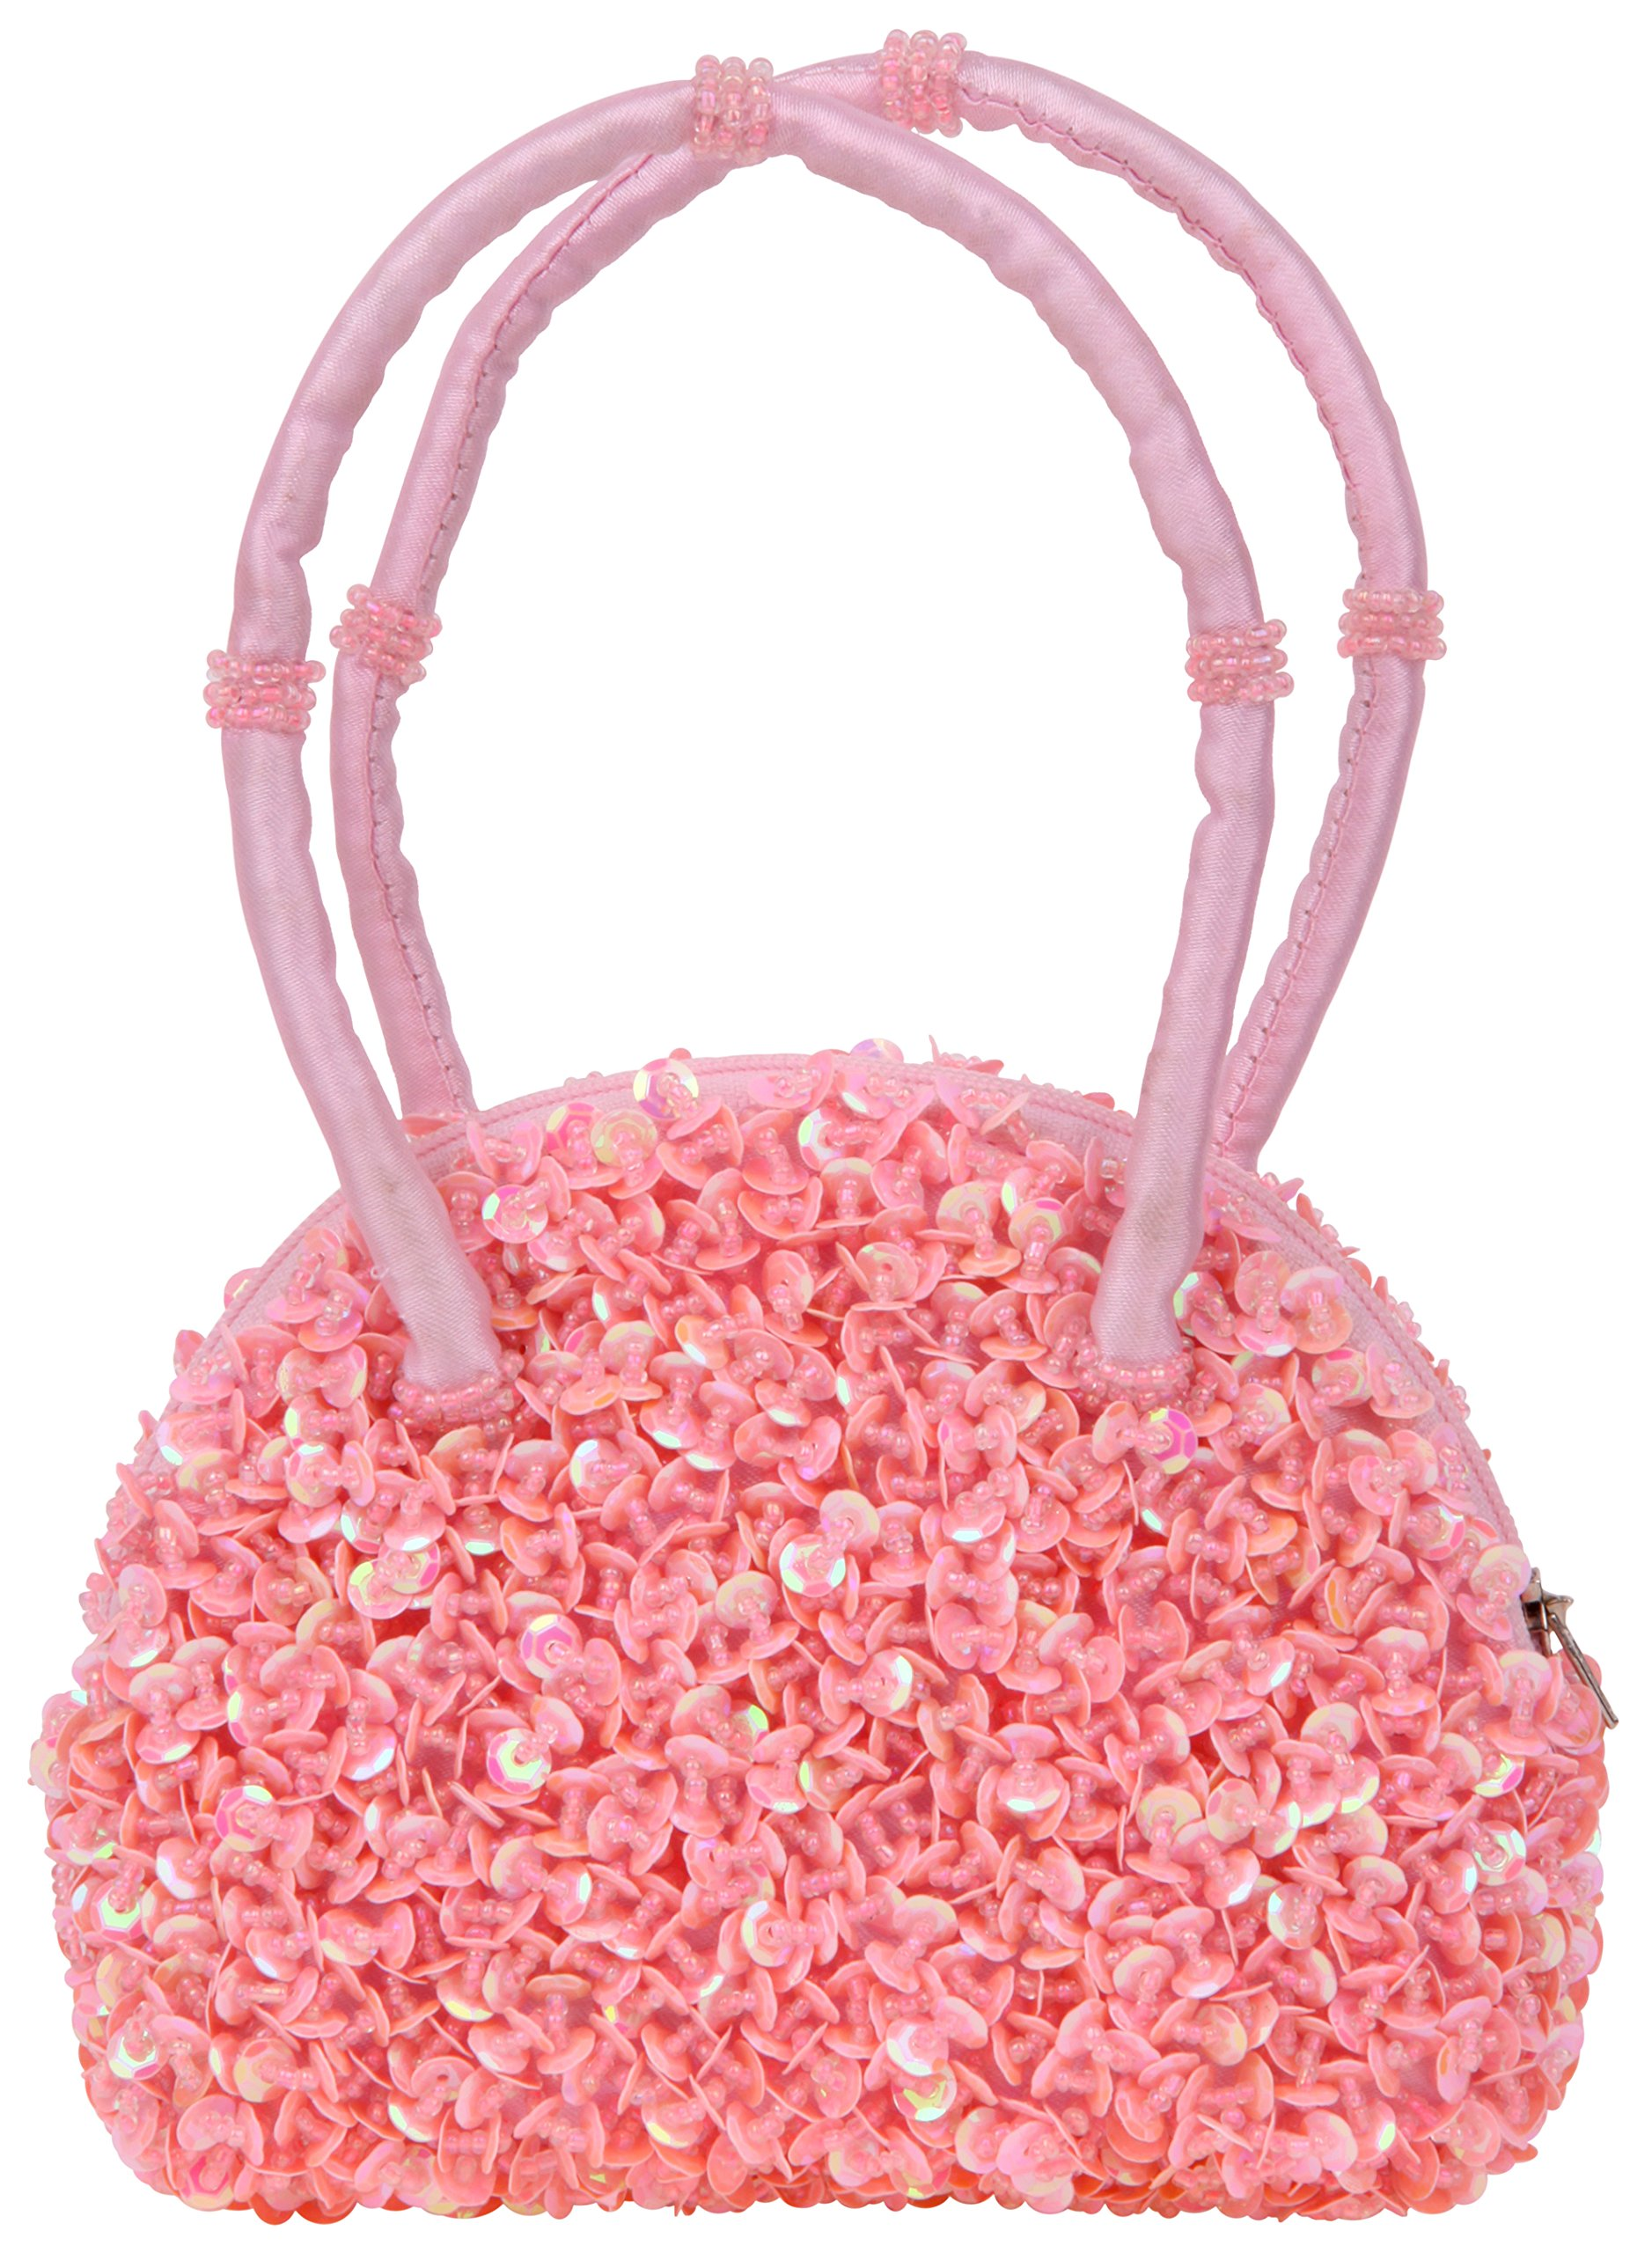 Girl's Sparkly Sequins and Beaded Purse with Hand Strap Light Pink